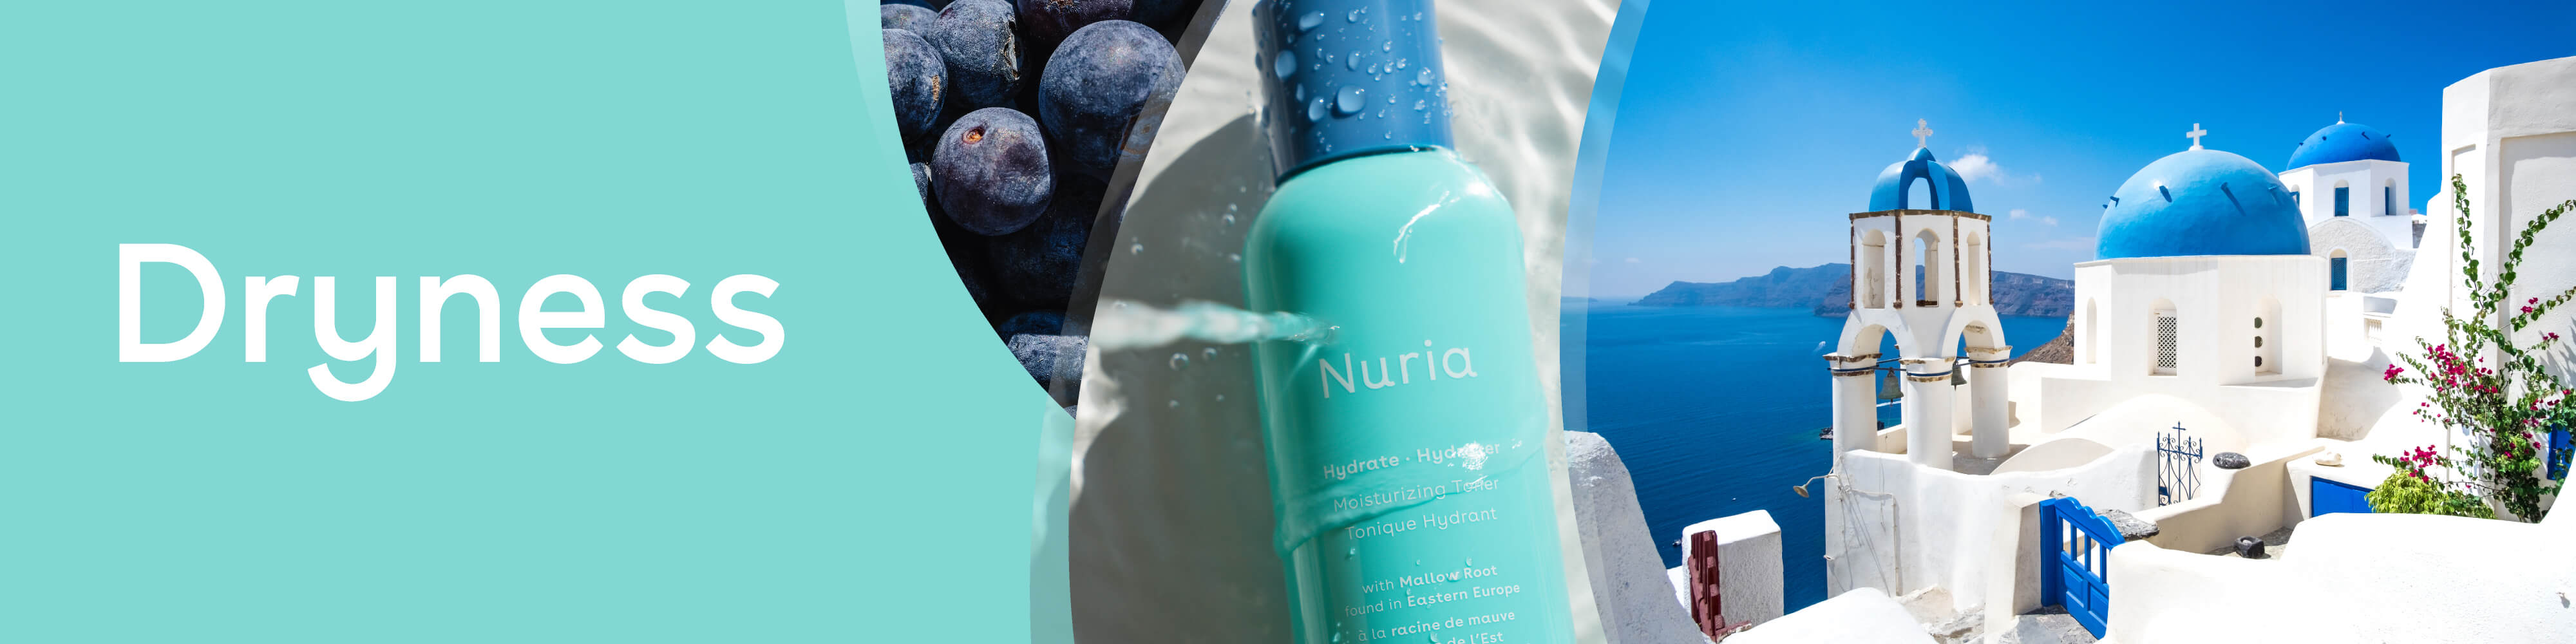 Dryness - Nuria's products for your skin concerns